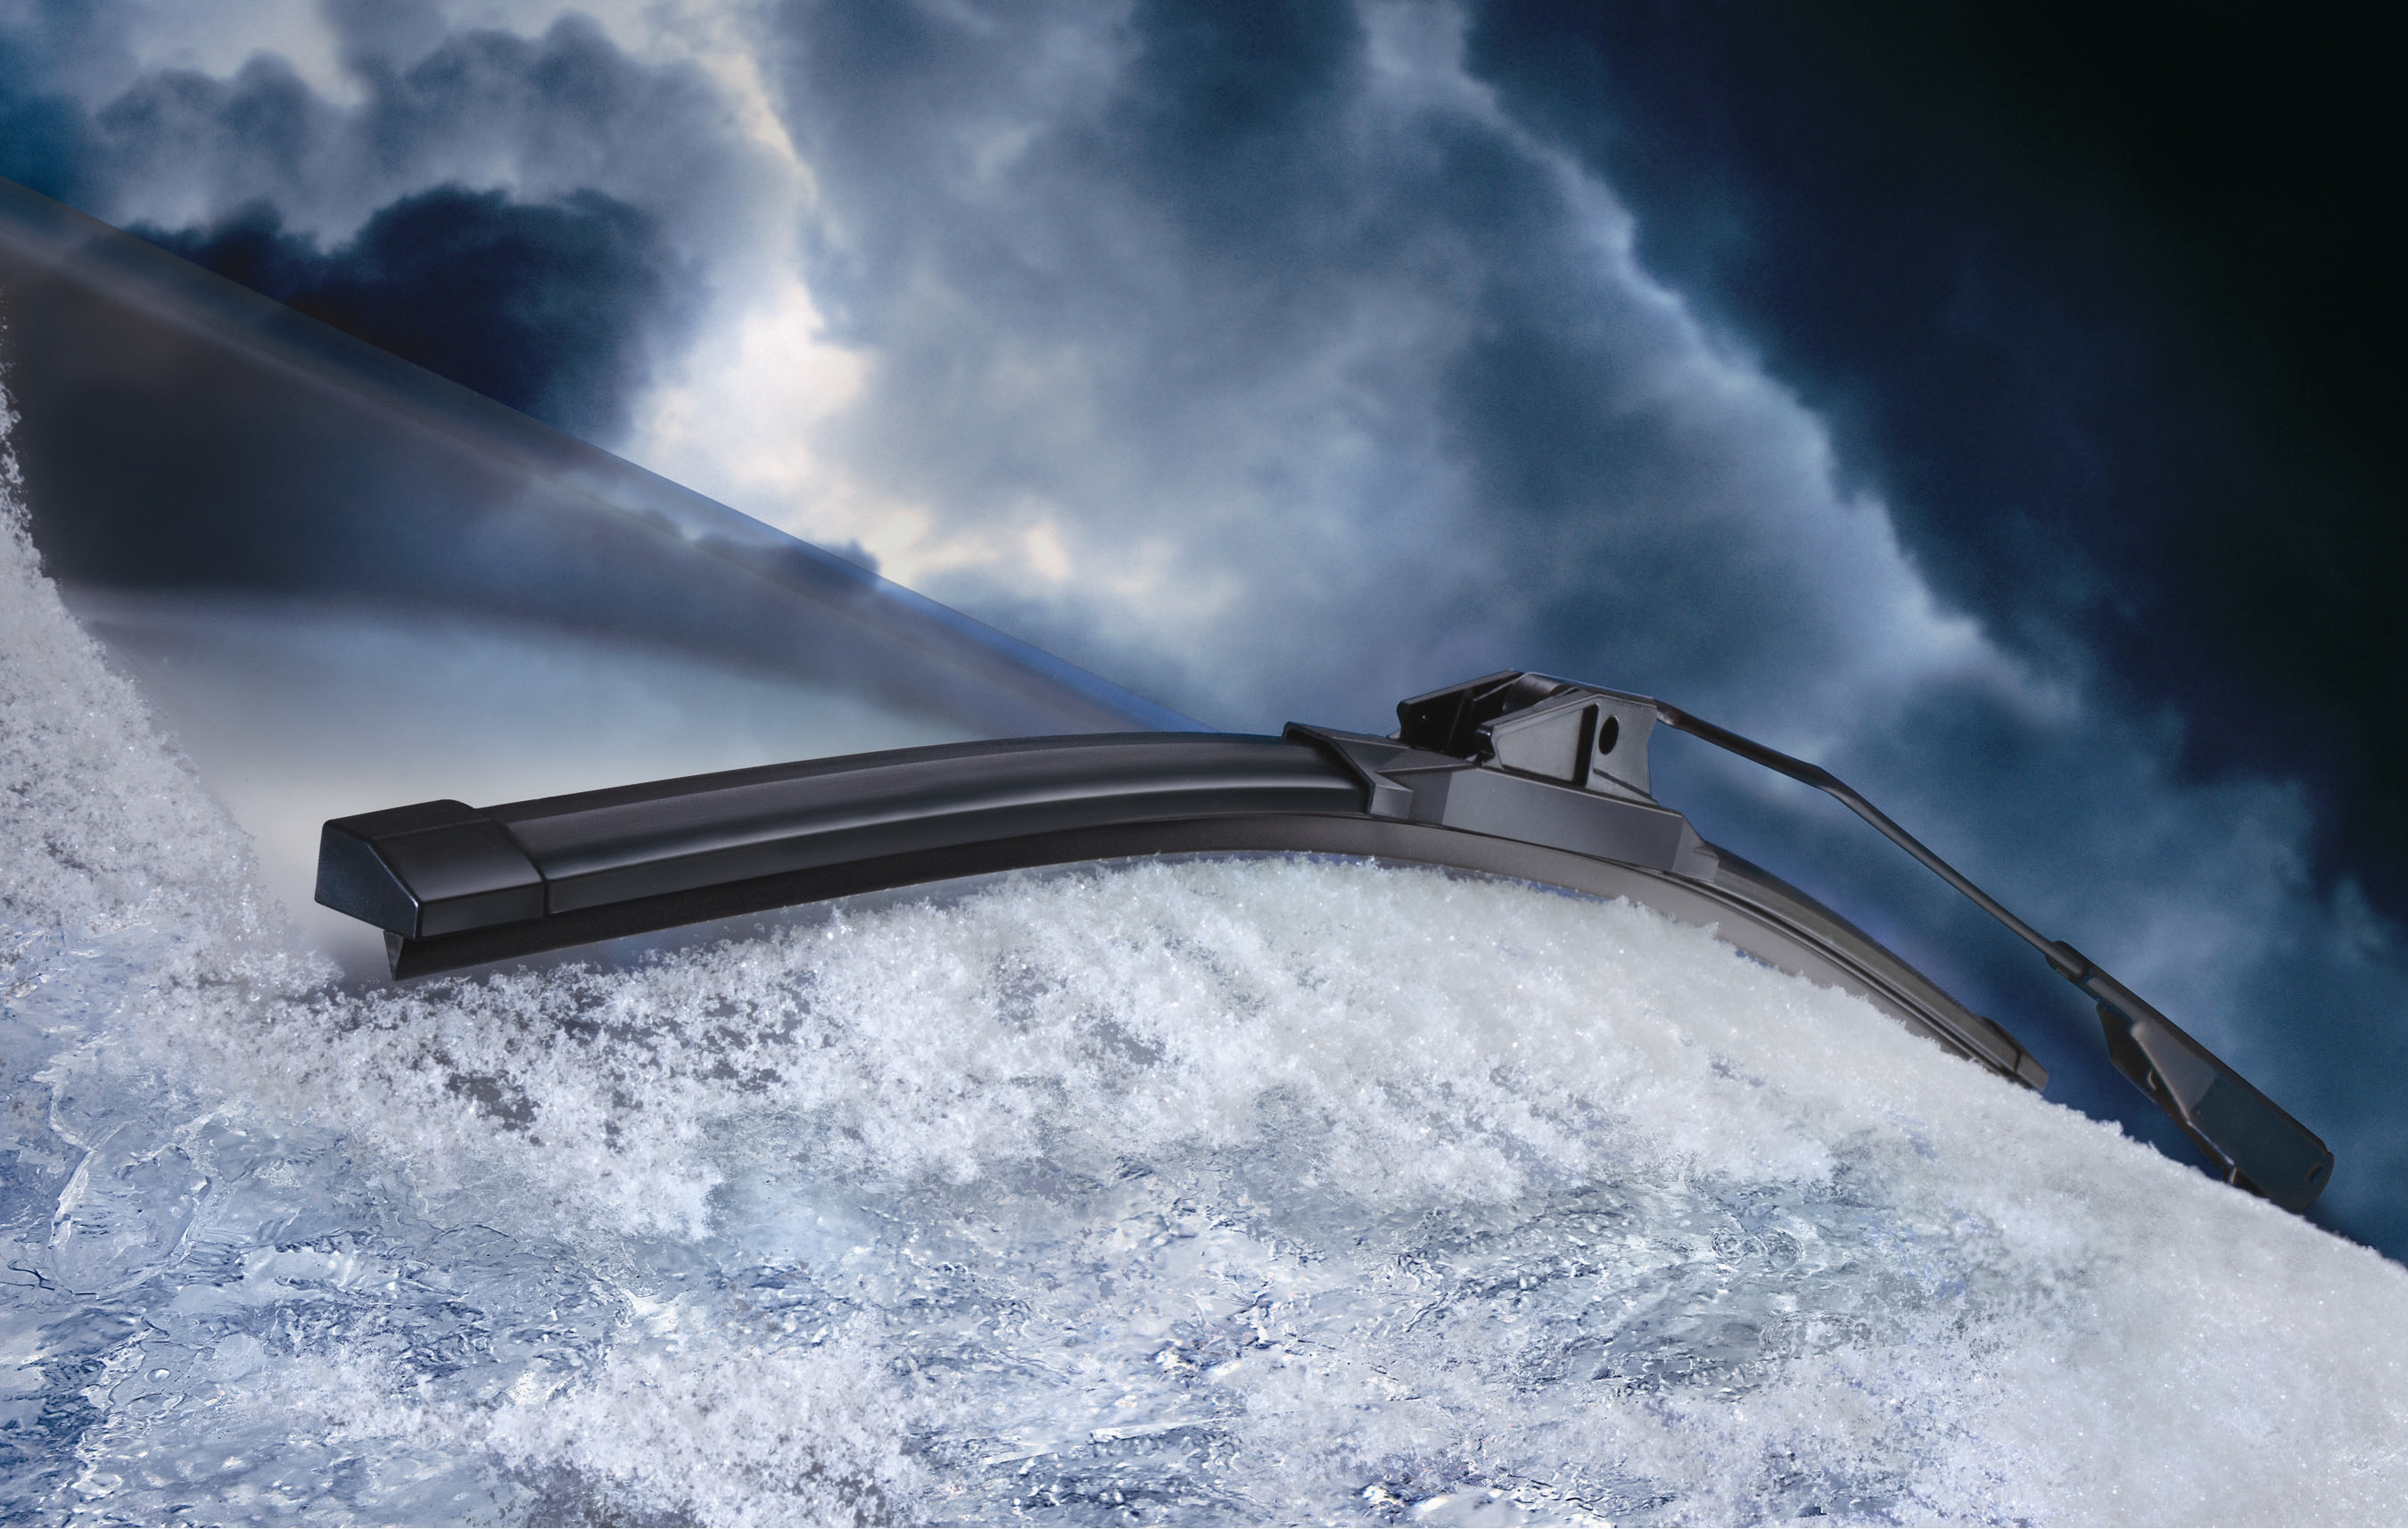 Cold? ACDelco has a sub-zero Winter Beam blade